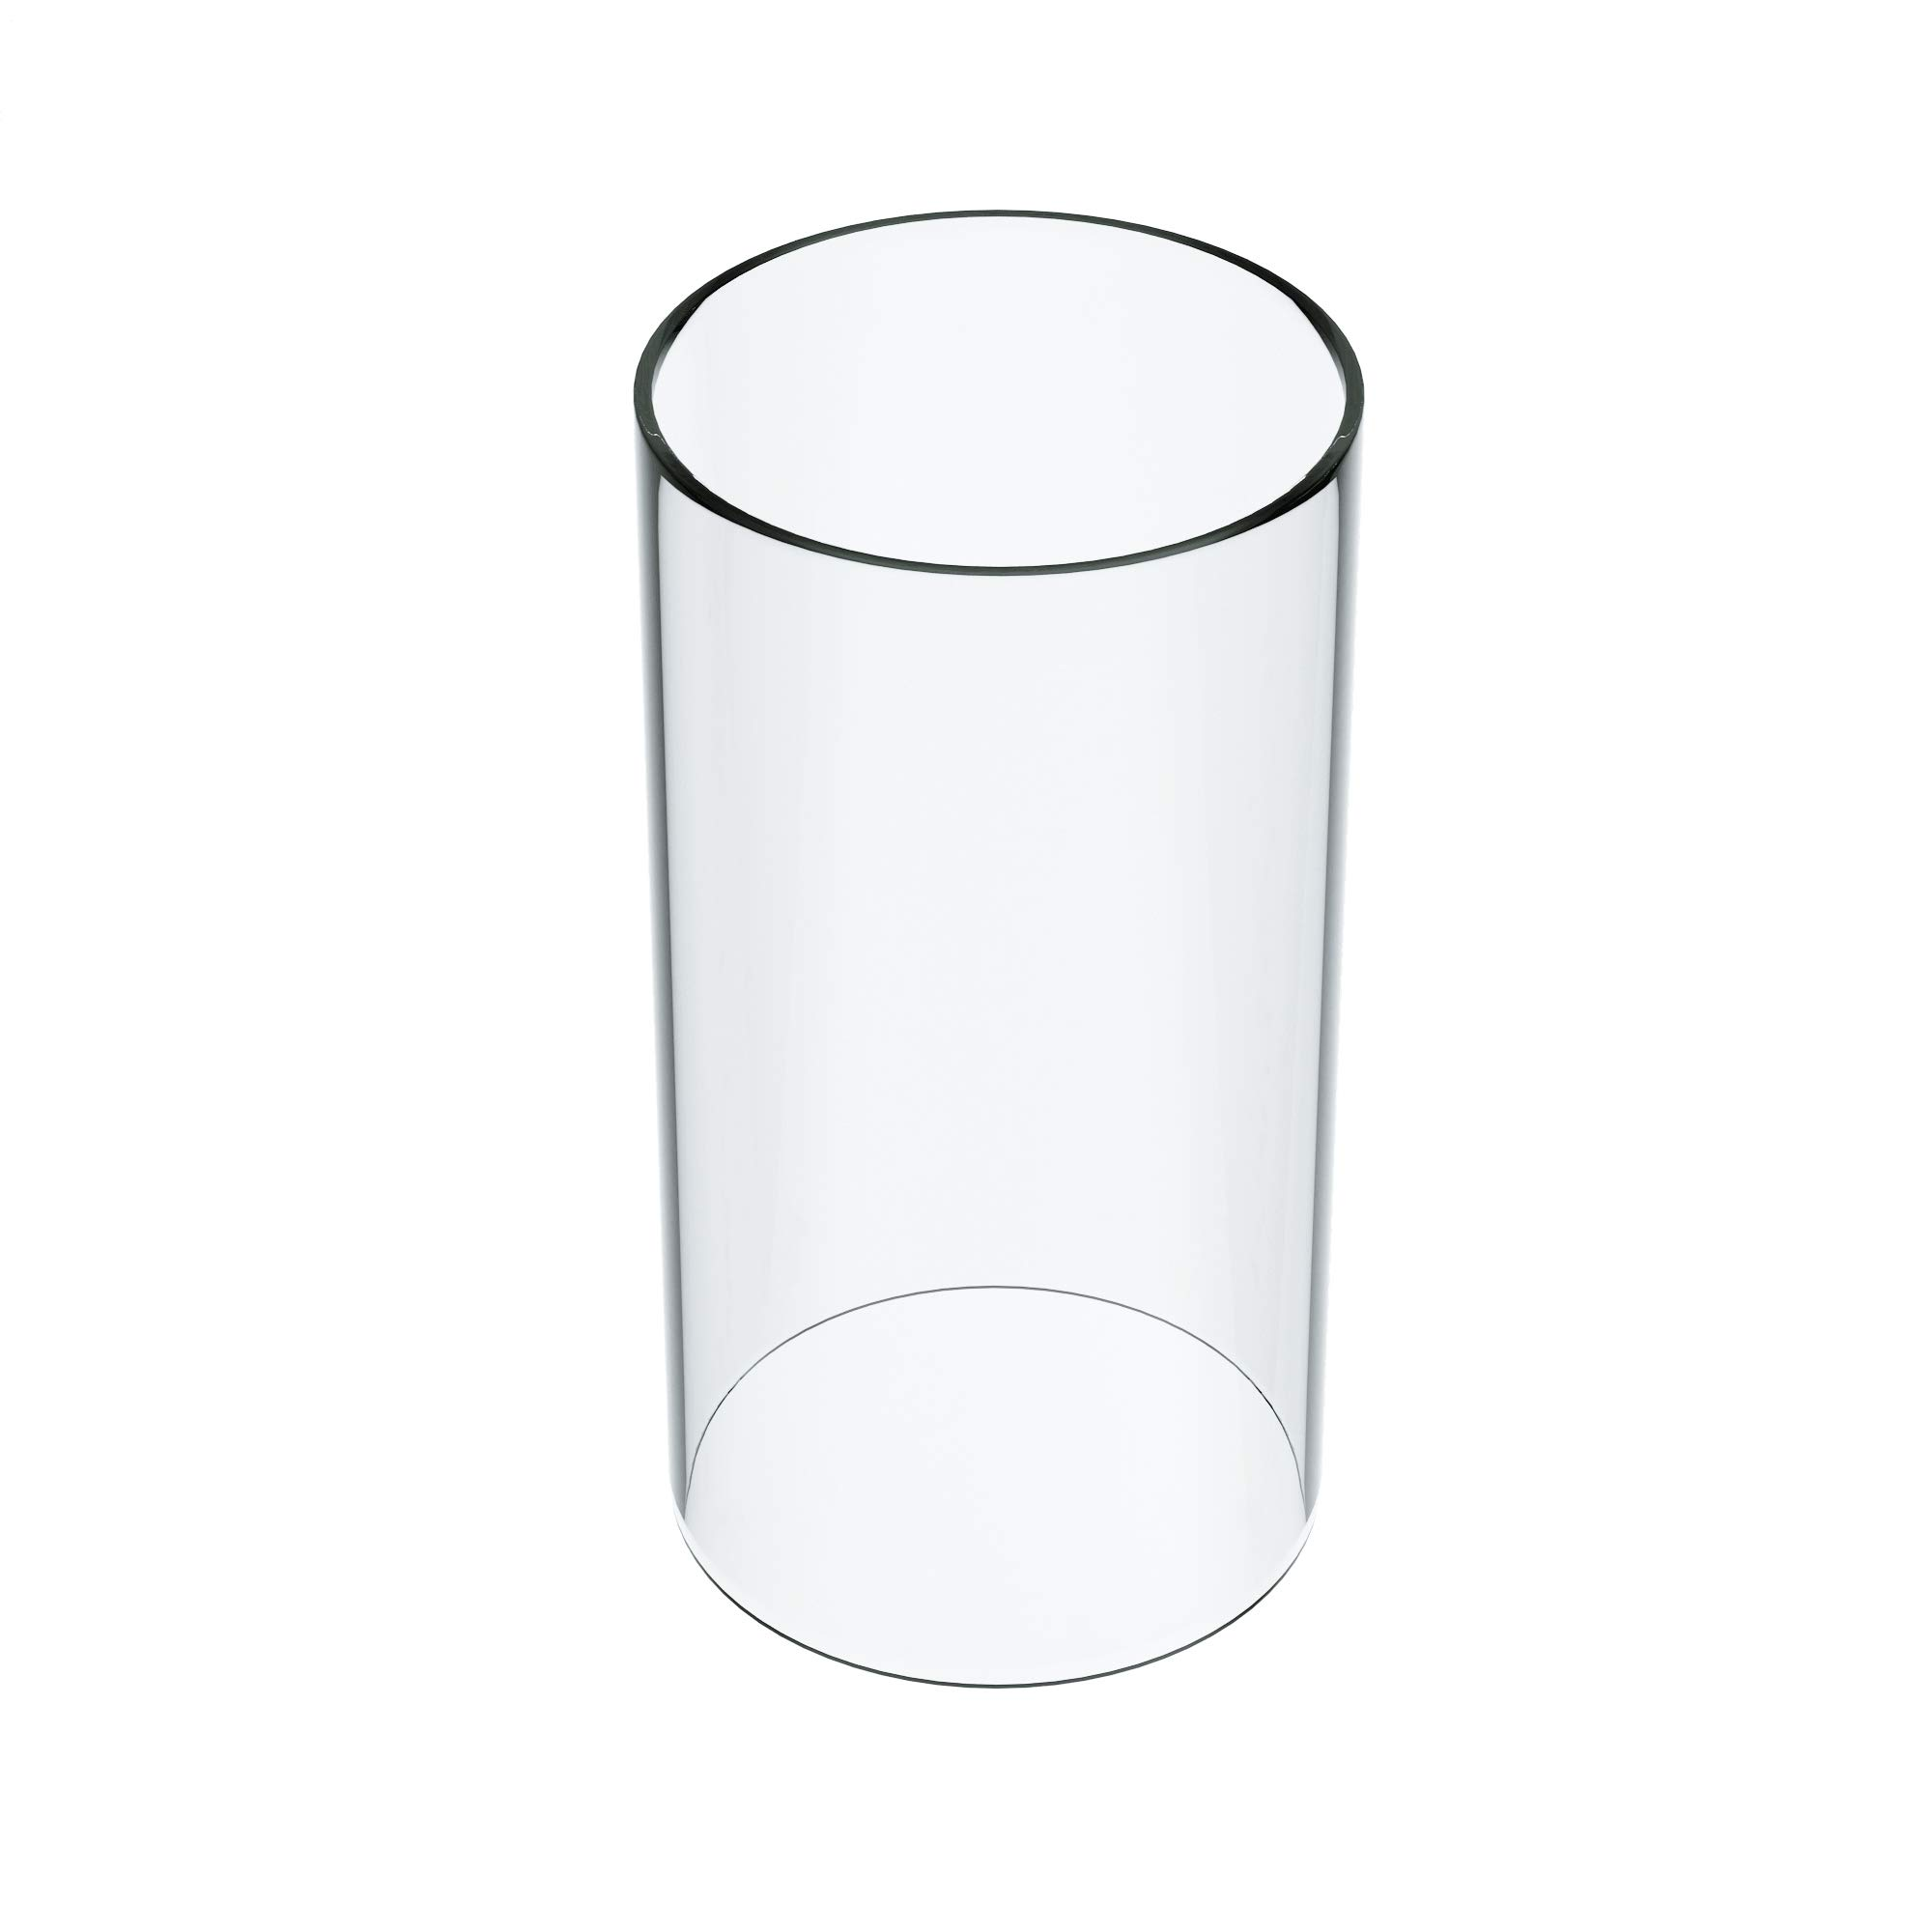 KETELAMP Hurricane Candle Holder Glass, Open Ended Glass, Cylinder Vase Open, Glass Lamp Shade of 5.5'' x 9'' (Multiple Specifications)